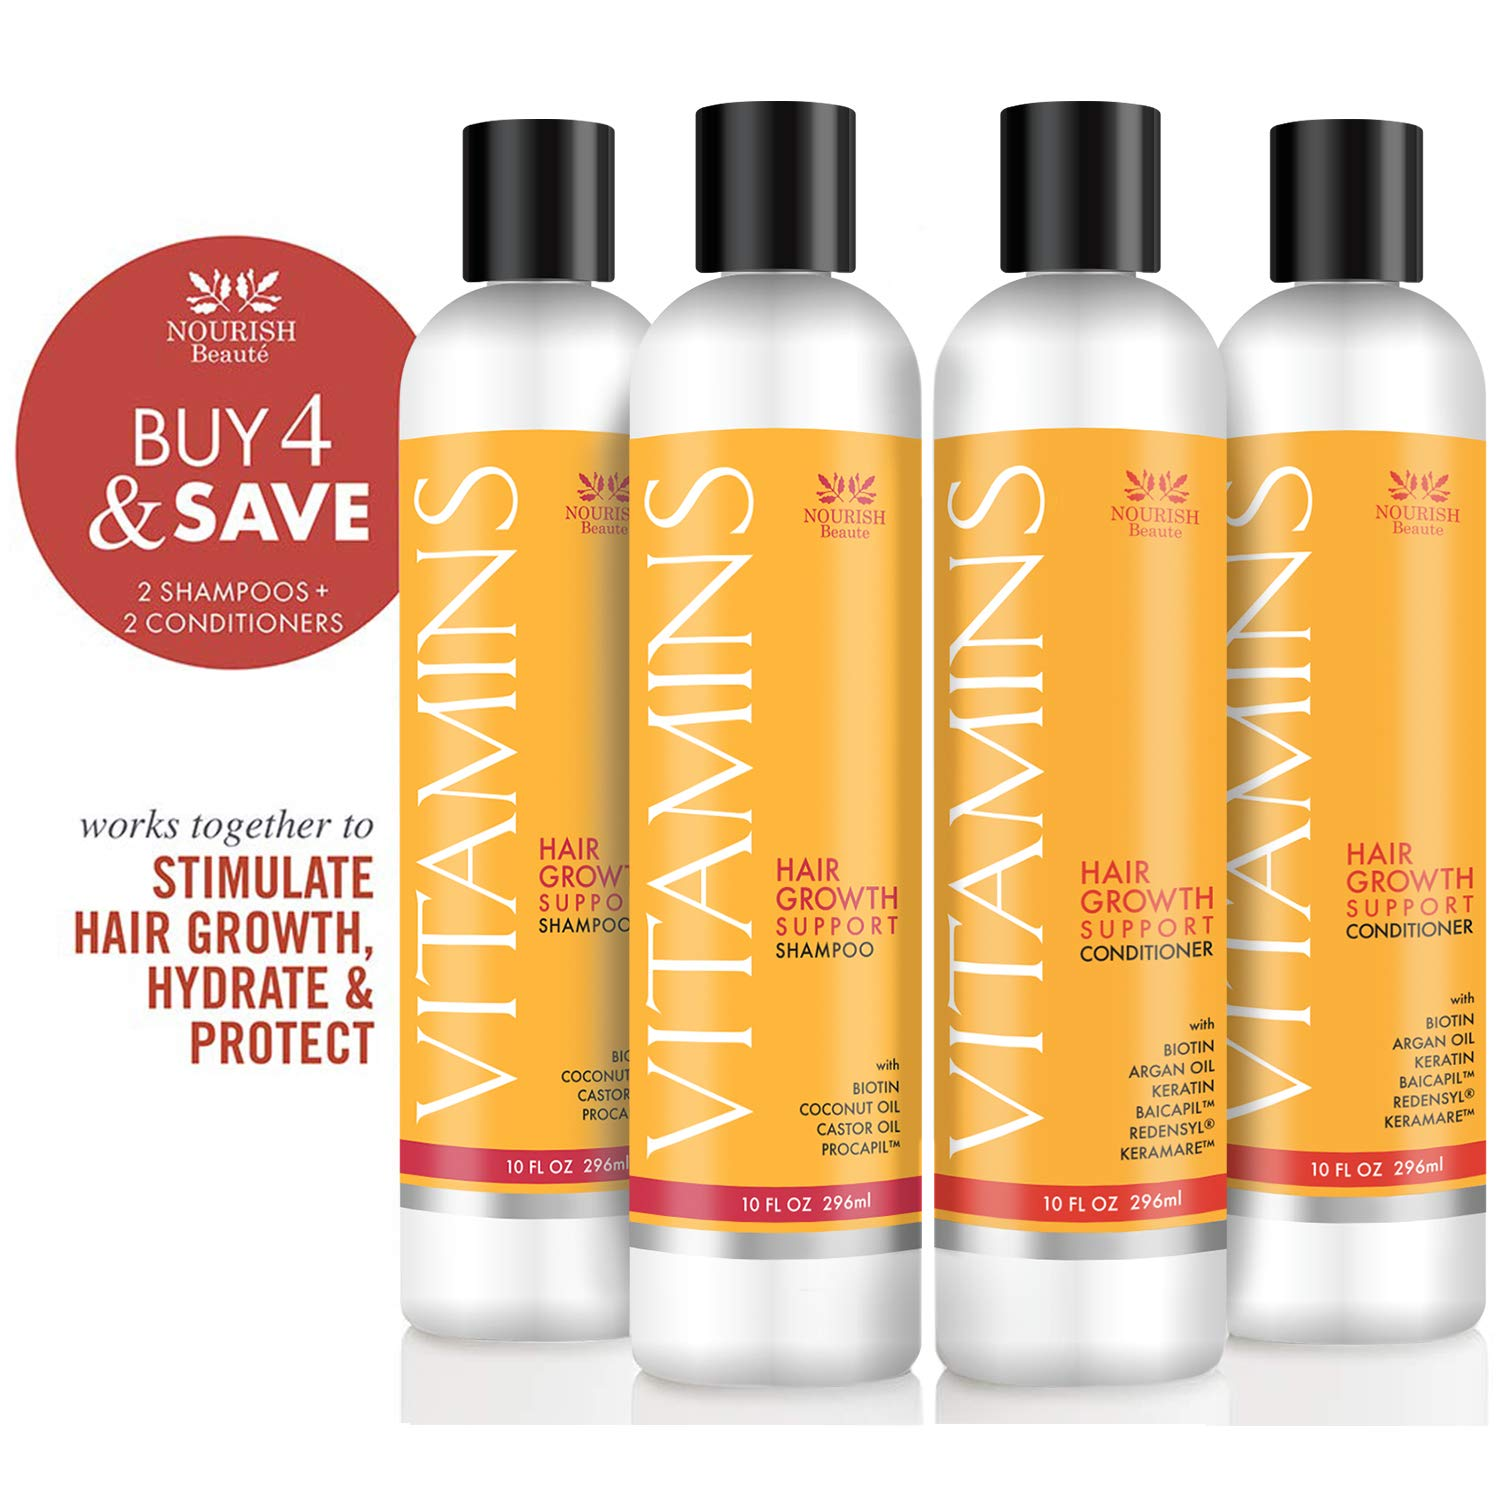 Nourish Beaute Vitamins Shampoo and Conditioner for Hair Loss that Promotes Hair Regrowth, For Men and Women, 2 10 Ounce by Nourish Beaute